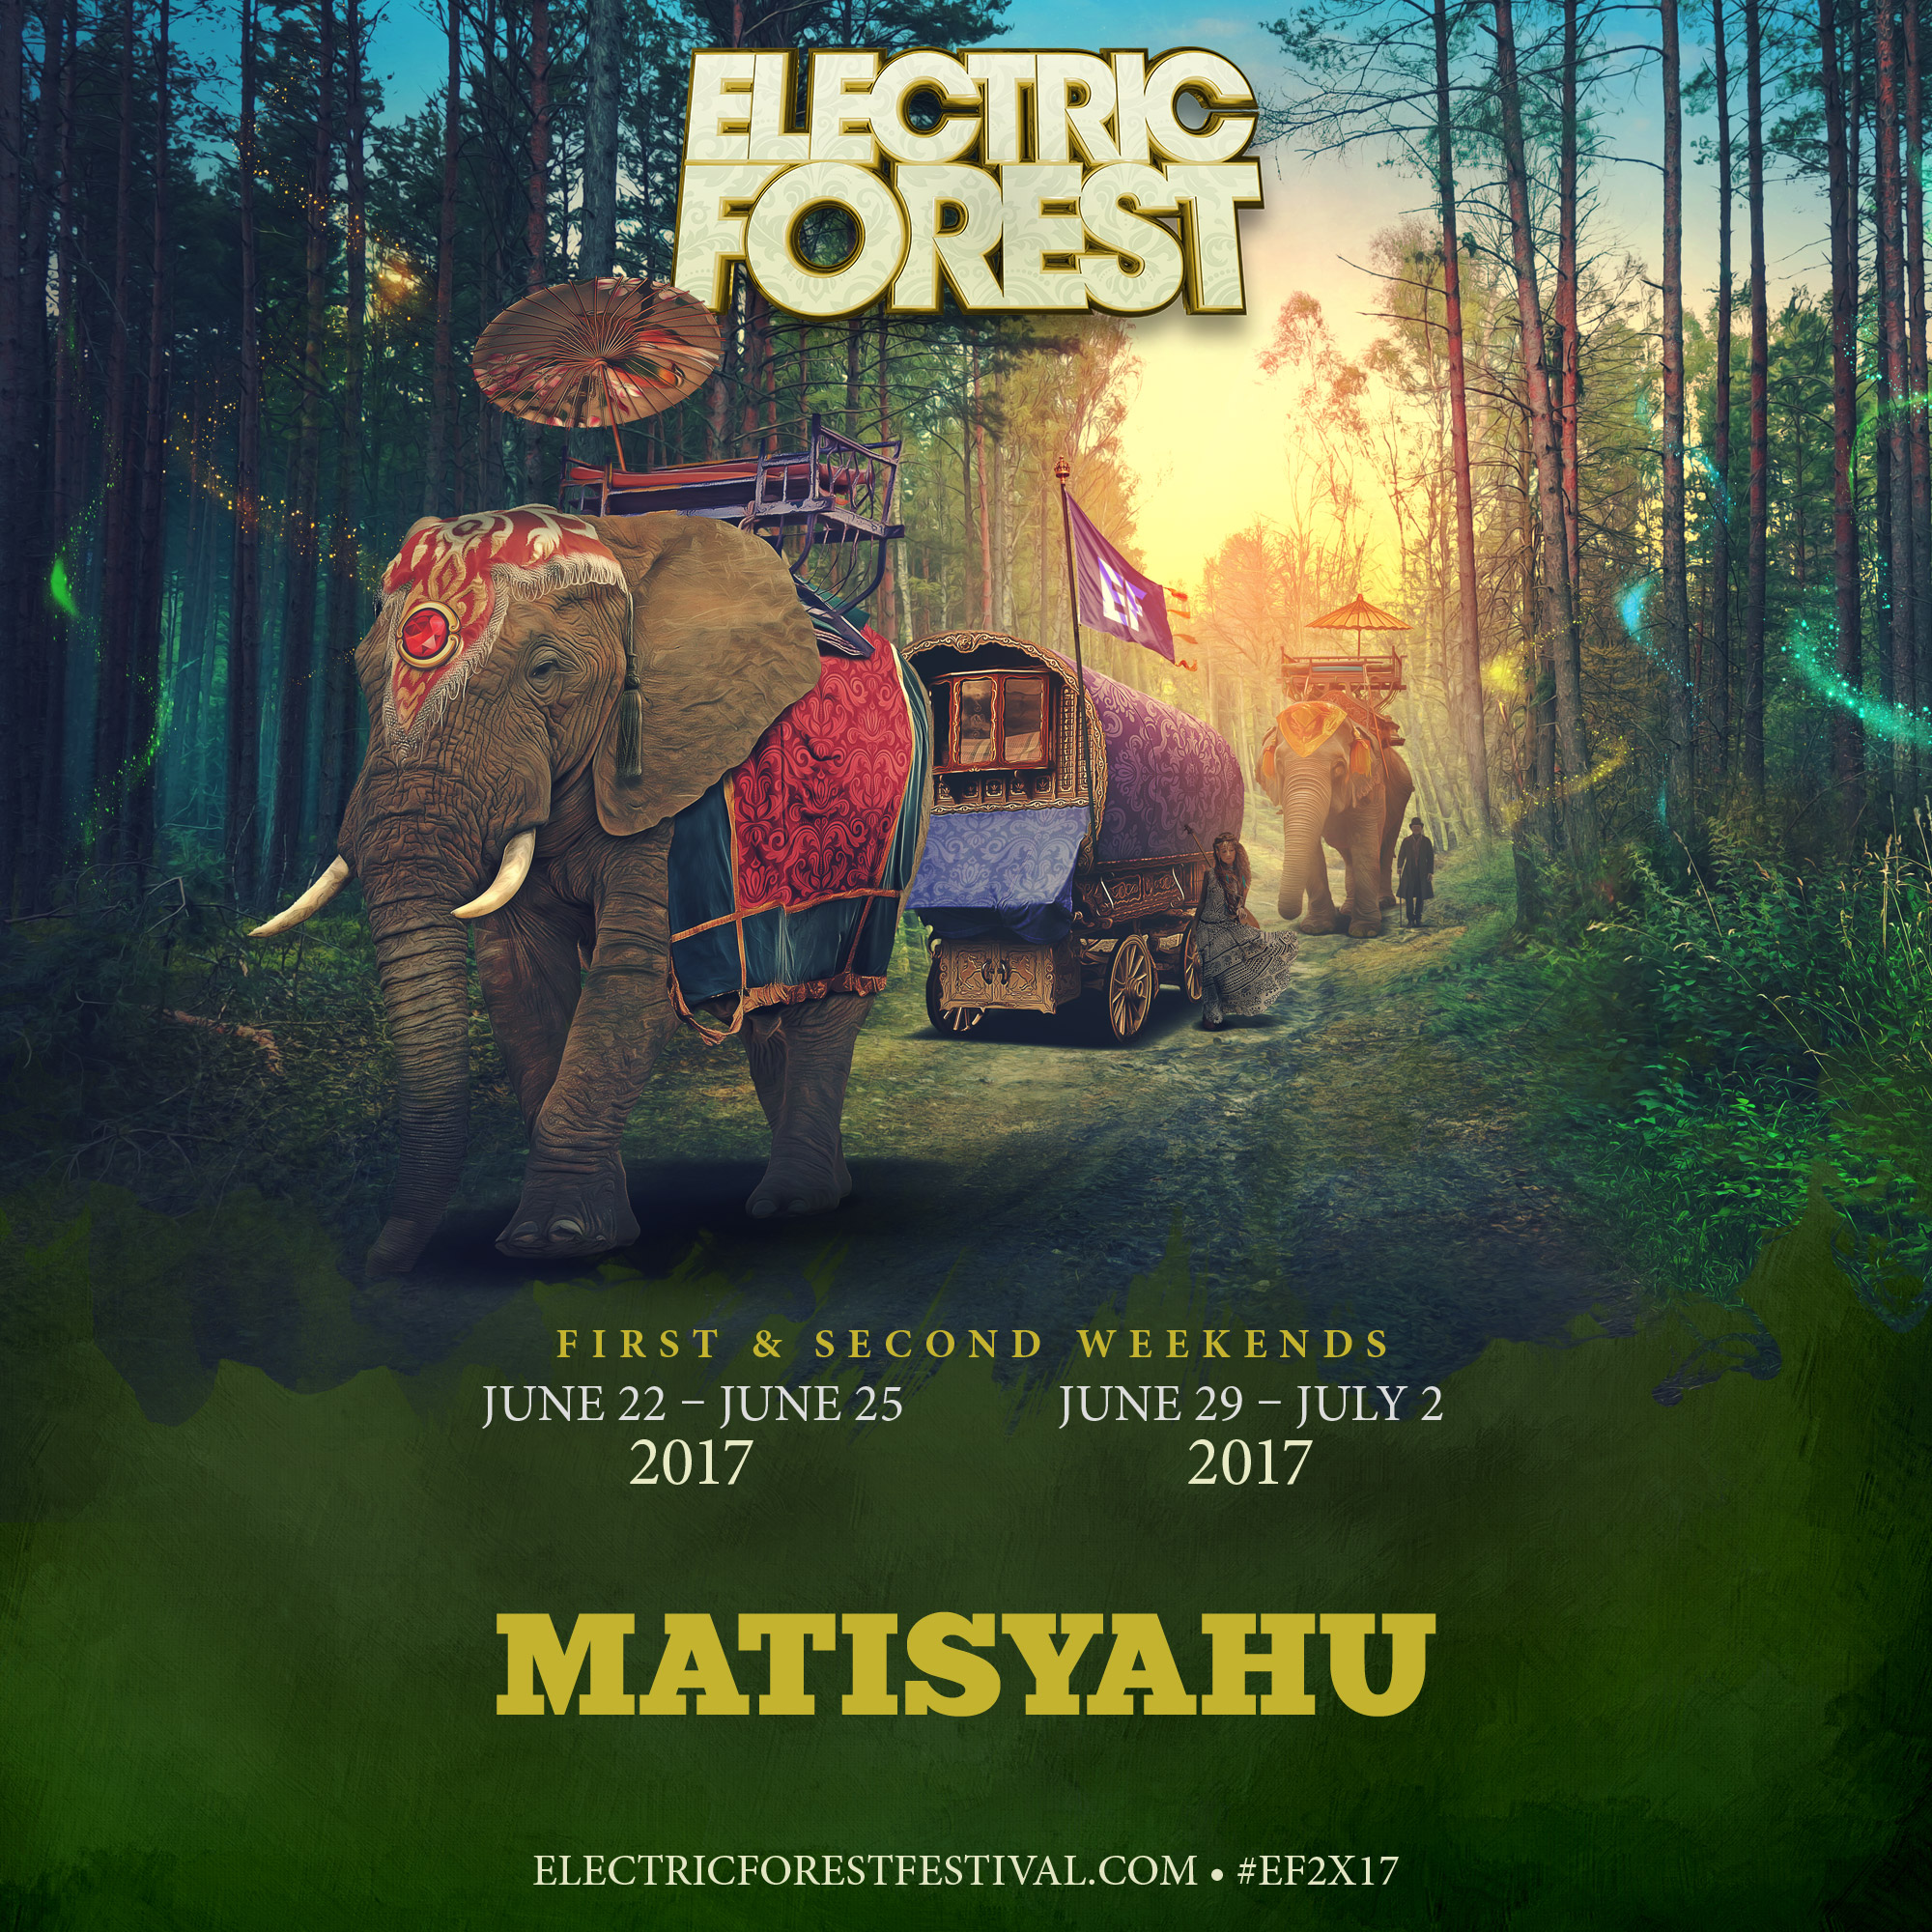 electric forest 2017.JPG